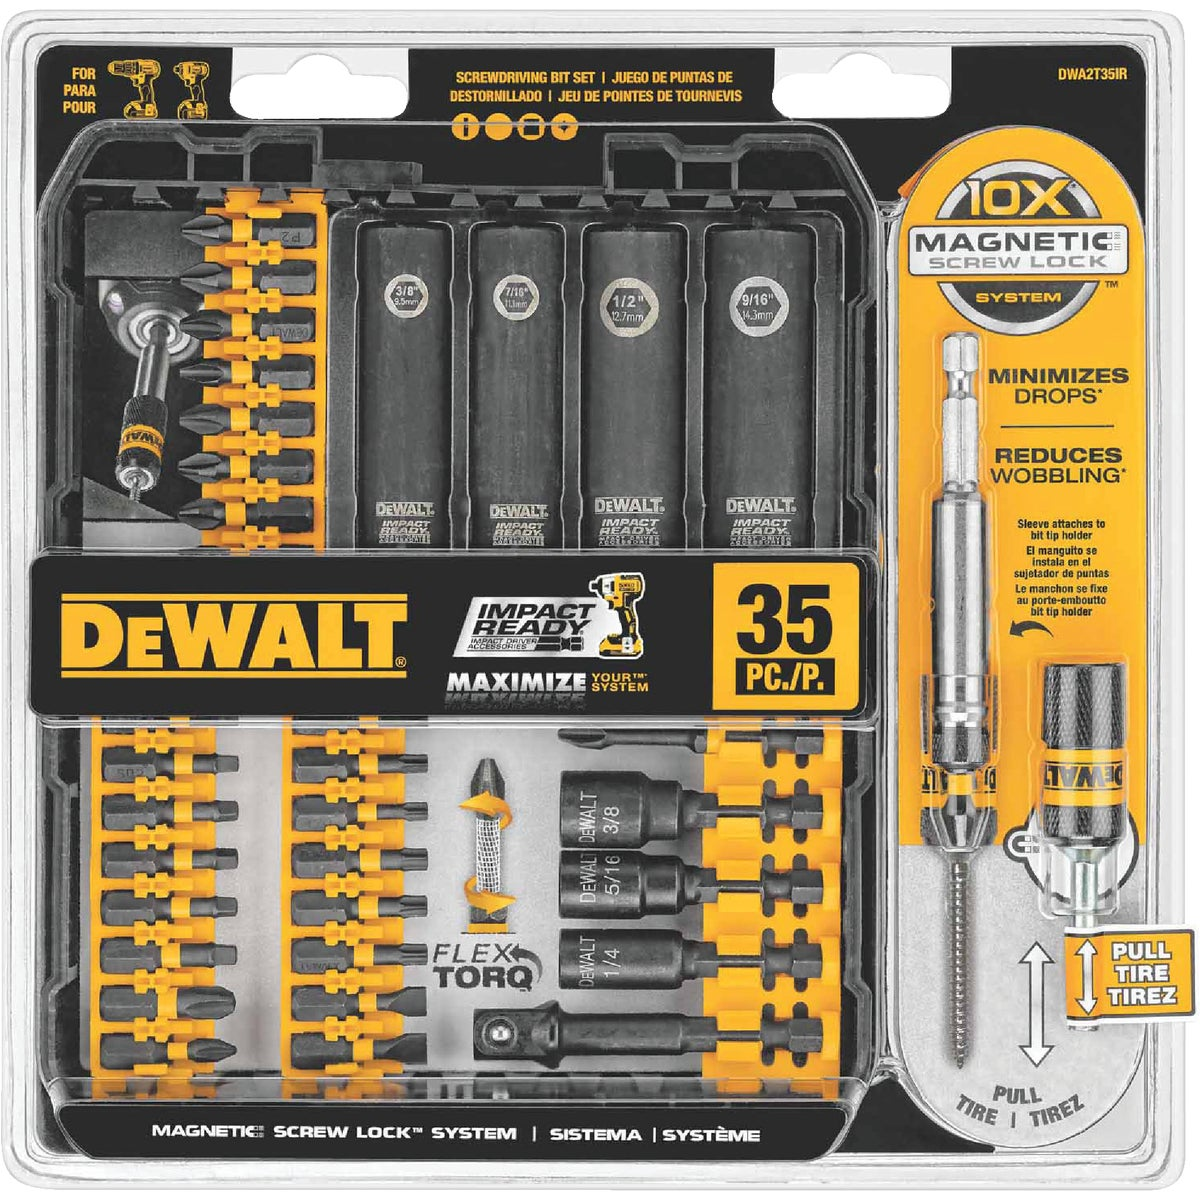 38PC IMPACT READY SET - DW2169 by DeWalt